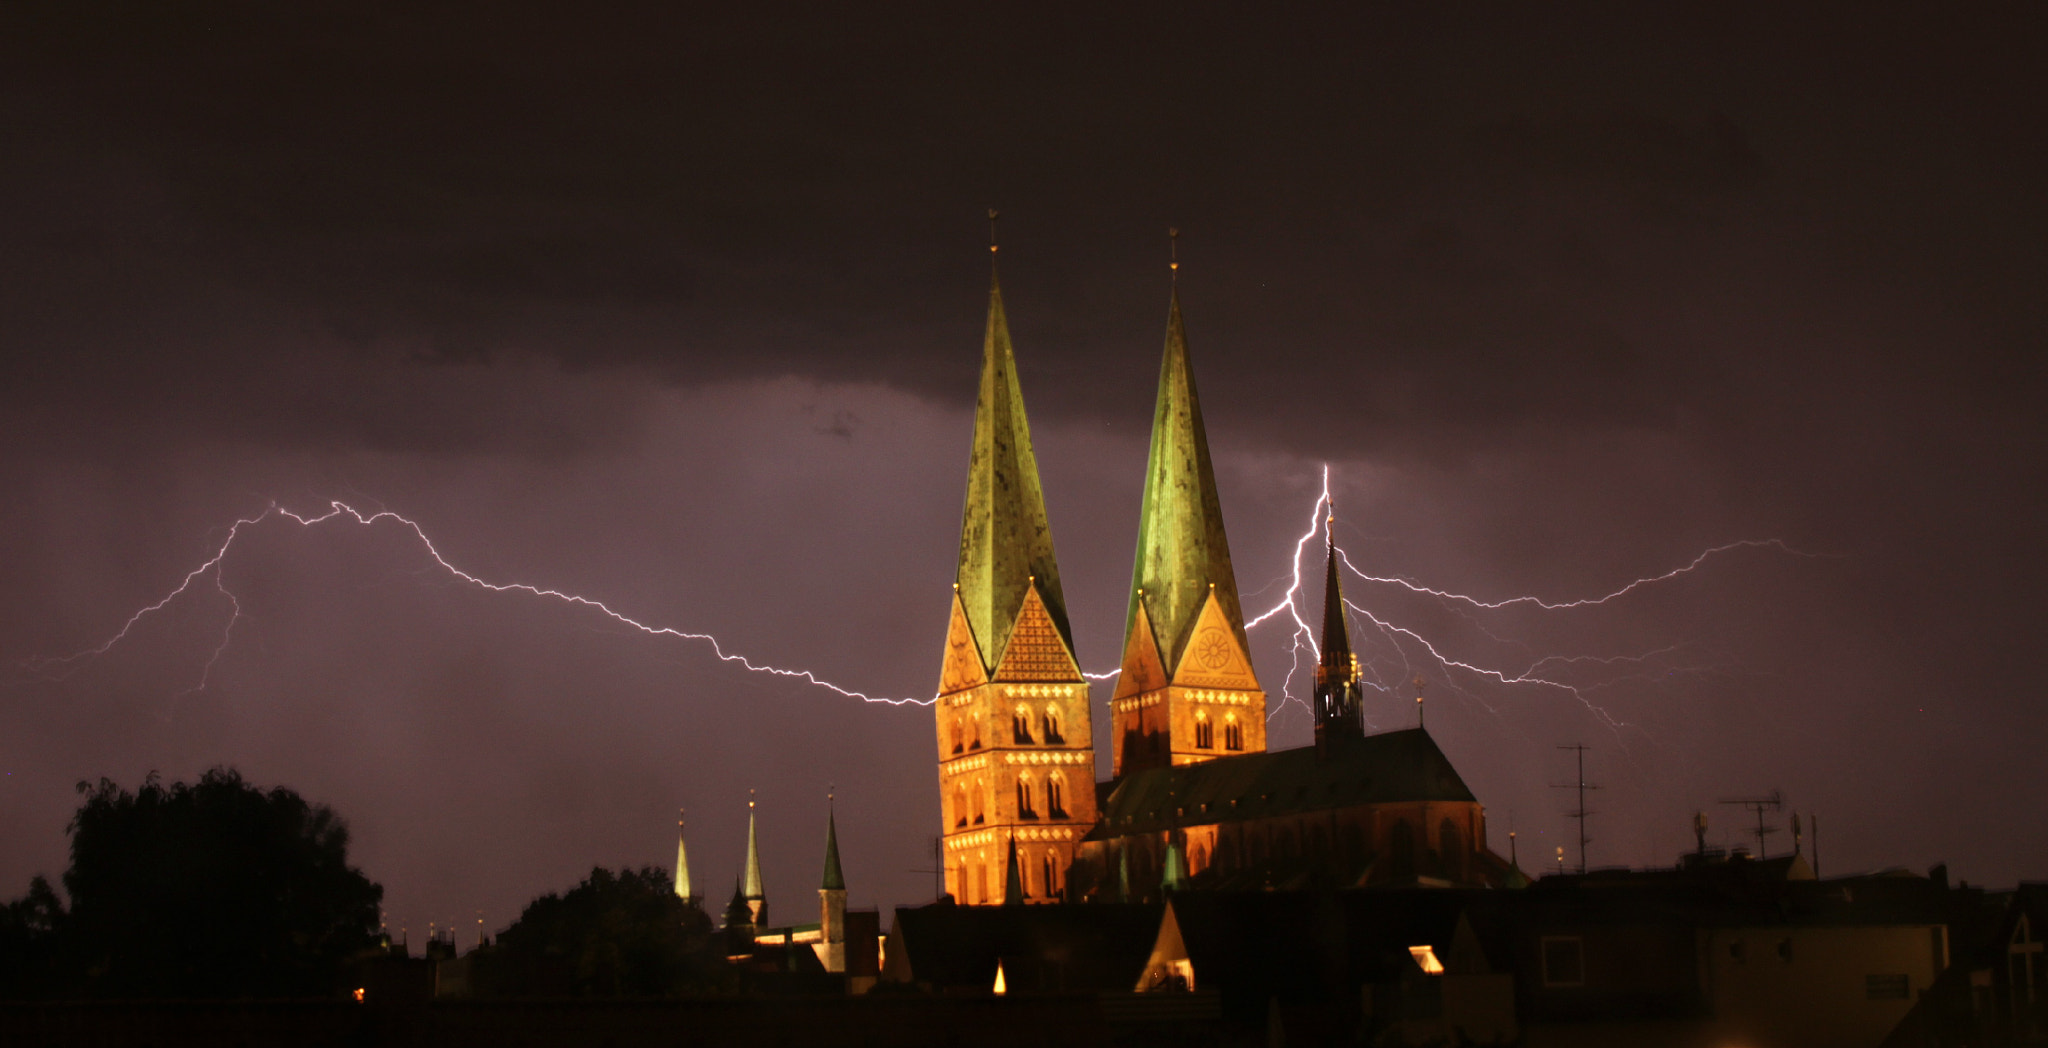 Photograph Lübeck Thunderstorm by Tanja Nevermore on 500px